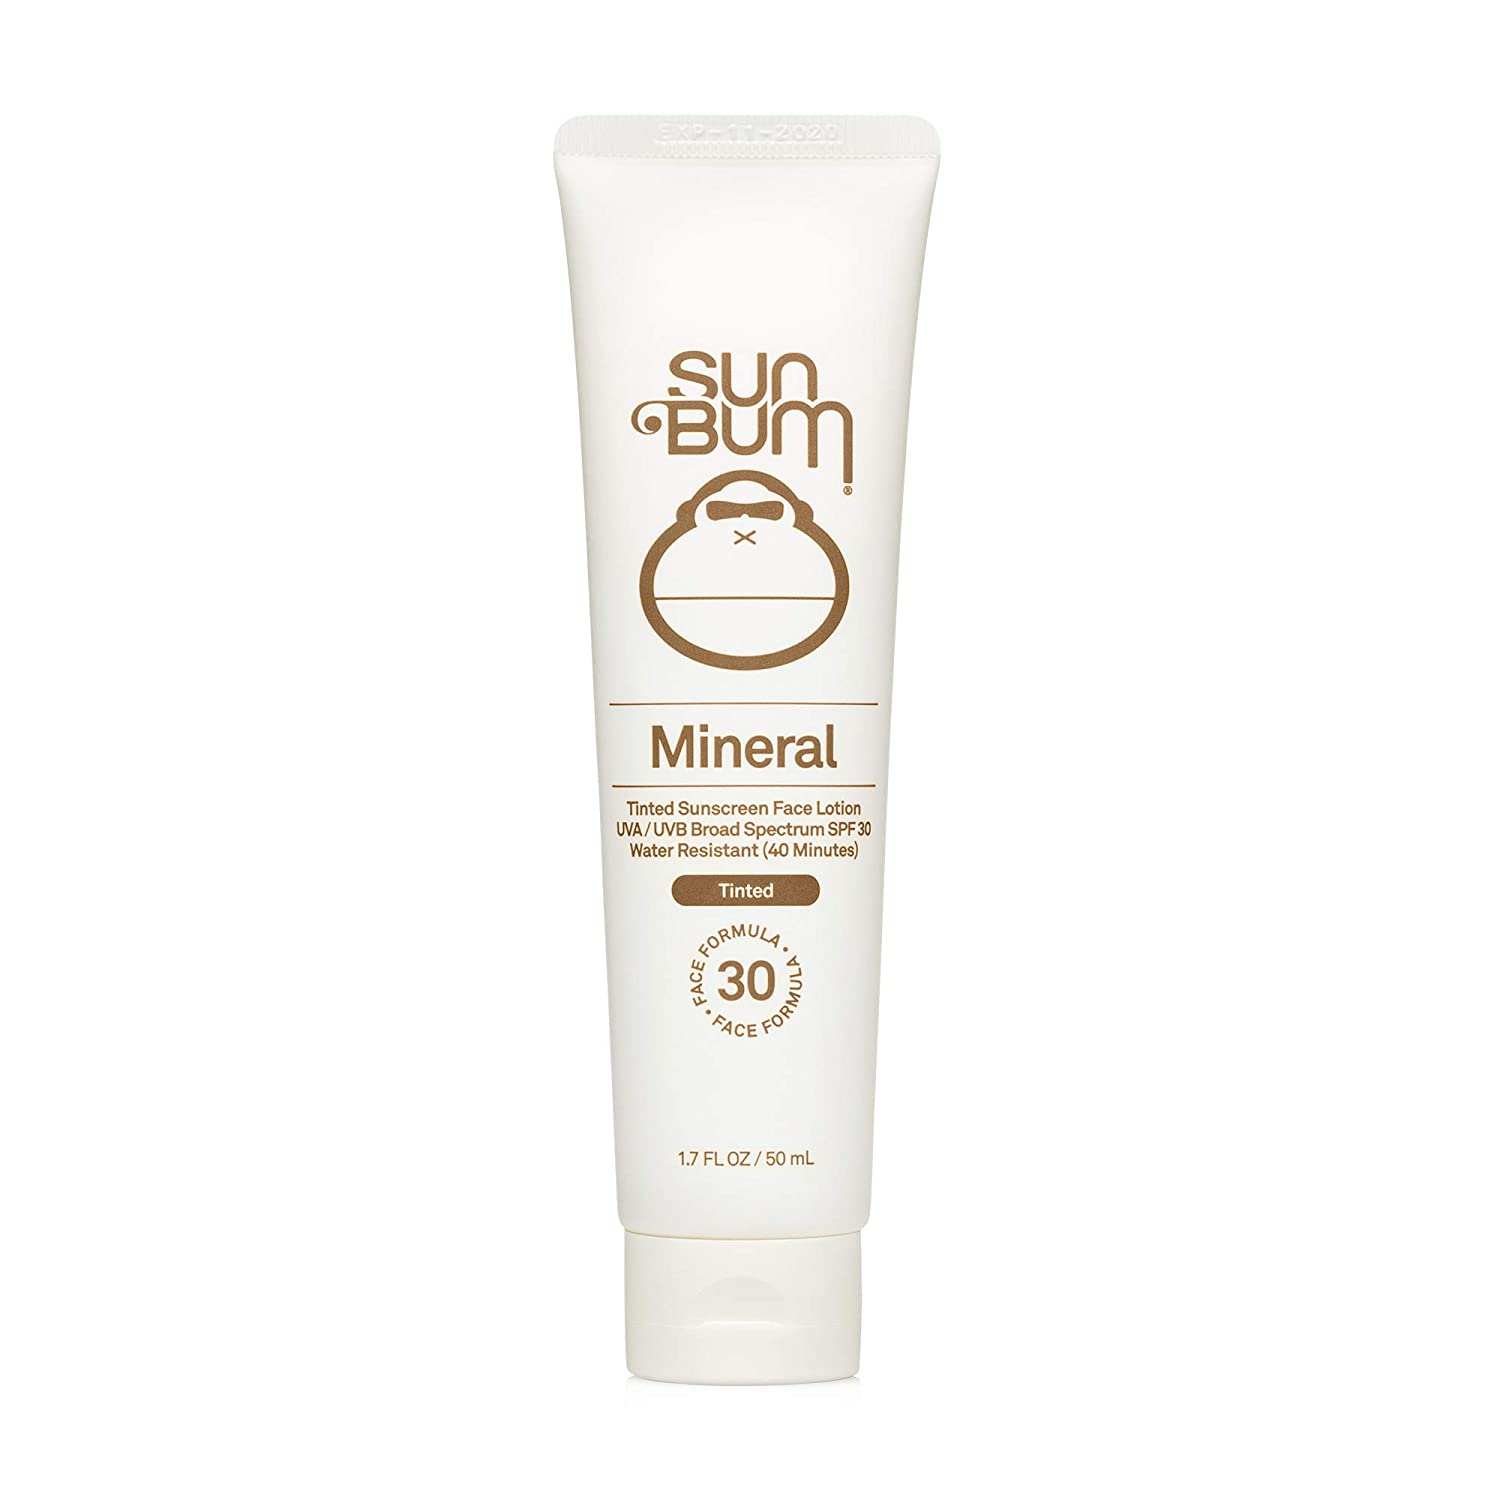 Sun Bum Mineral SPF 30 Tinted Sunscreen Face Lotion | Vegan and Reef Friendly (Octinoxate & Oxybenzone Free) Broad Spectrum Natural Sunscreen with UVA/UVB Protection